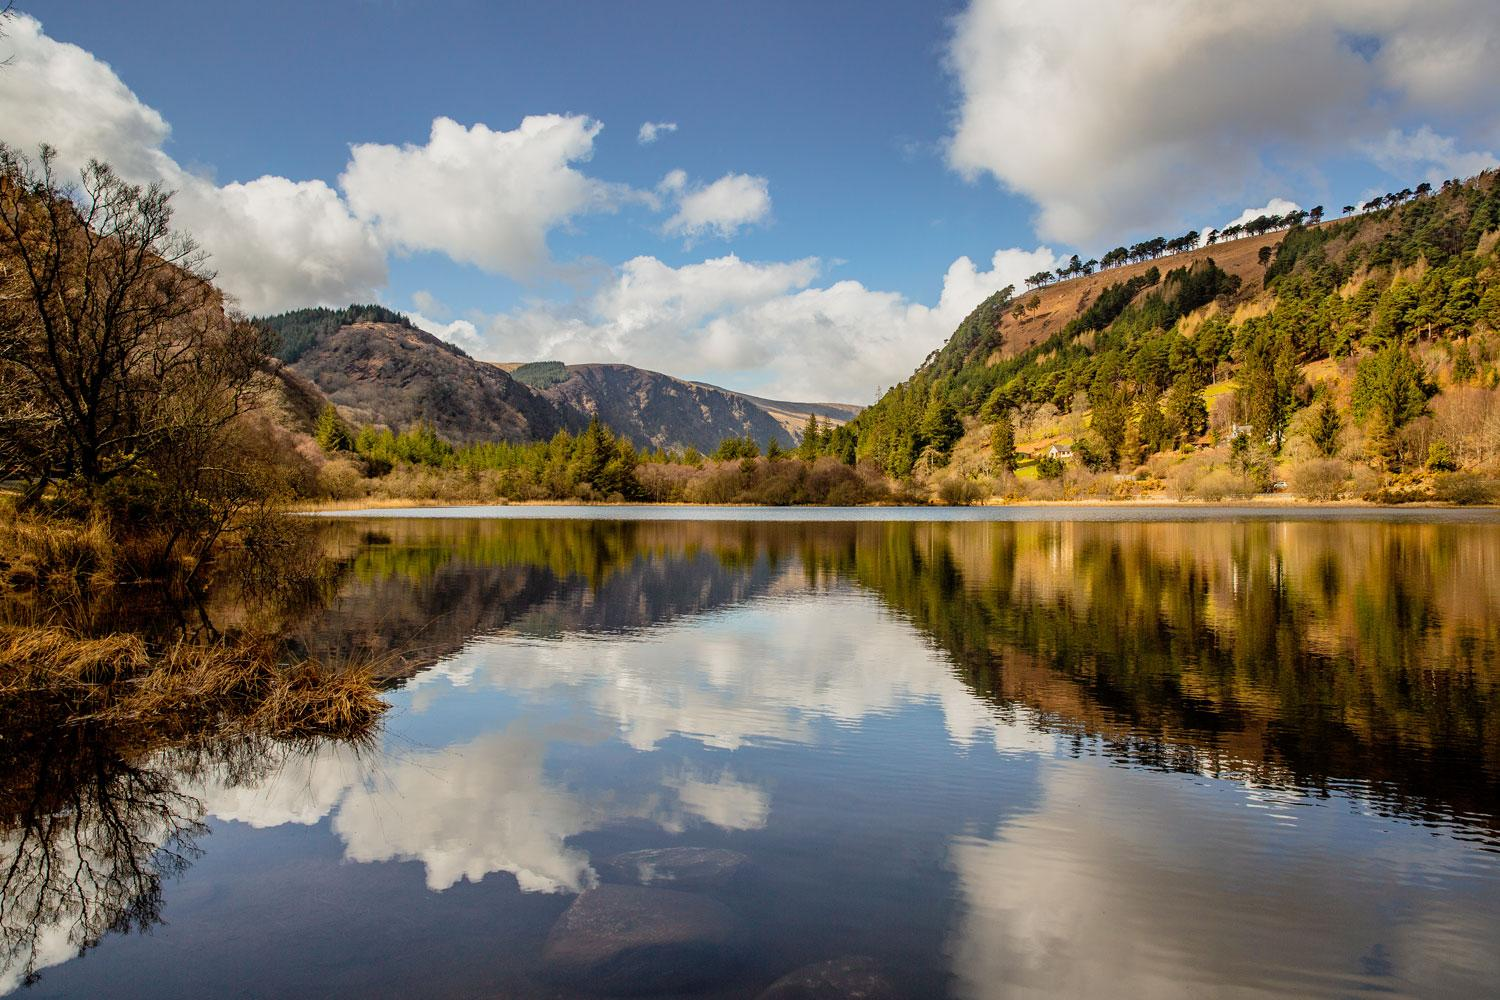 The heart of the Glendalough Valley